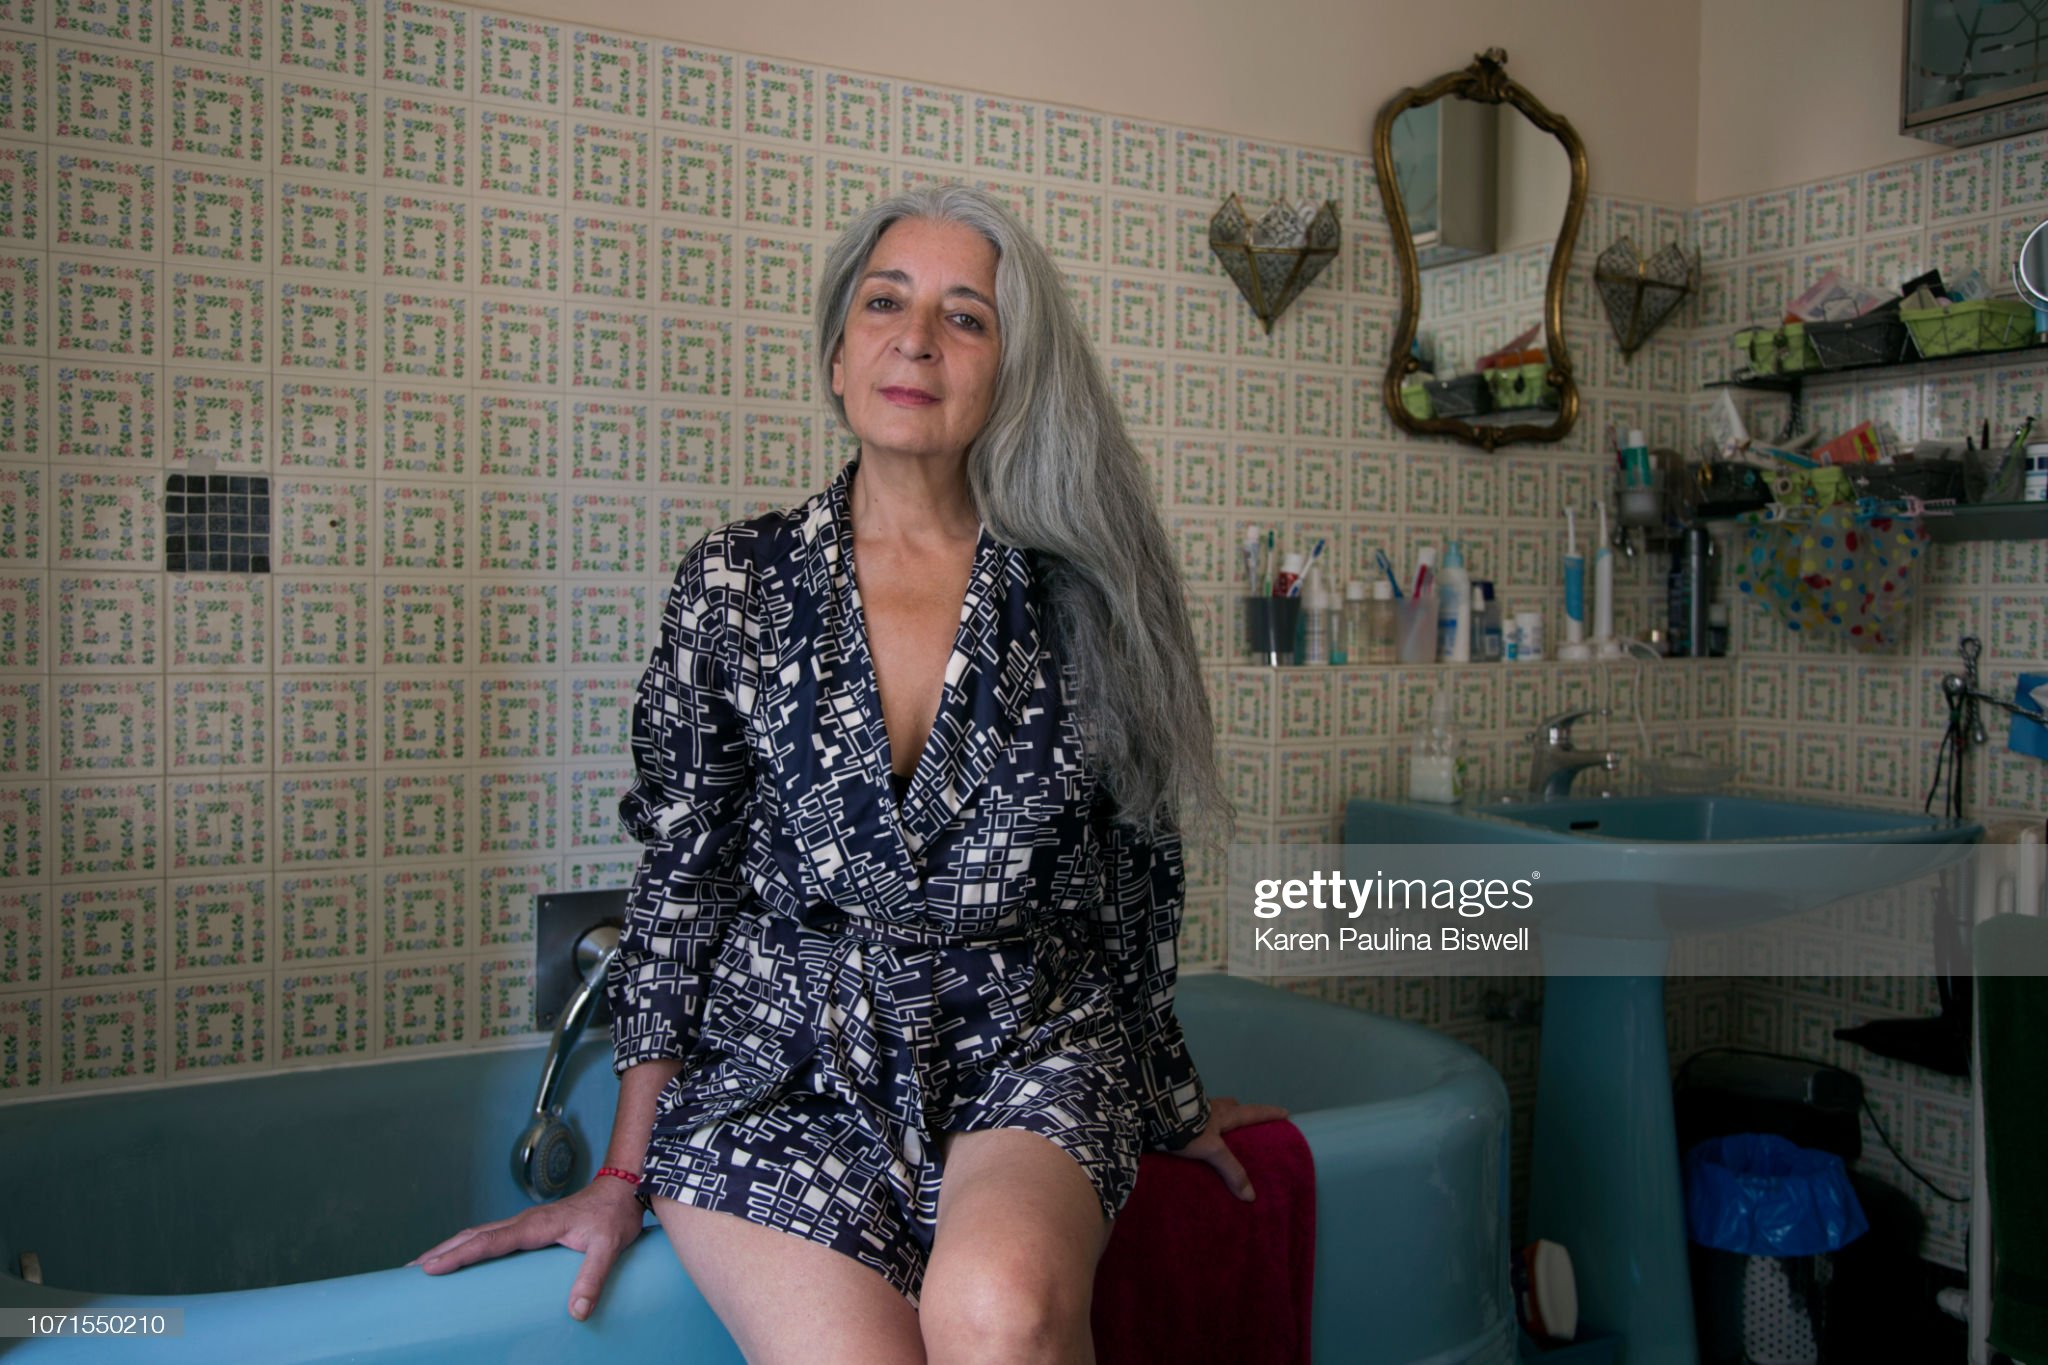 women smilimg in her bathroom : Stock Photo